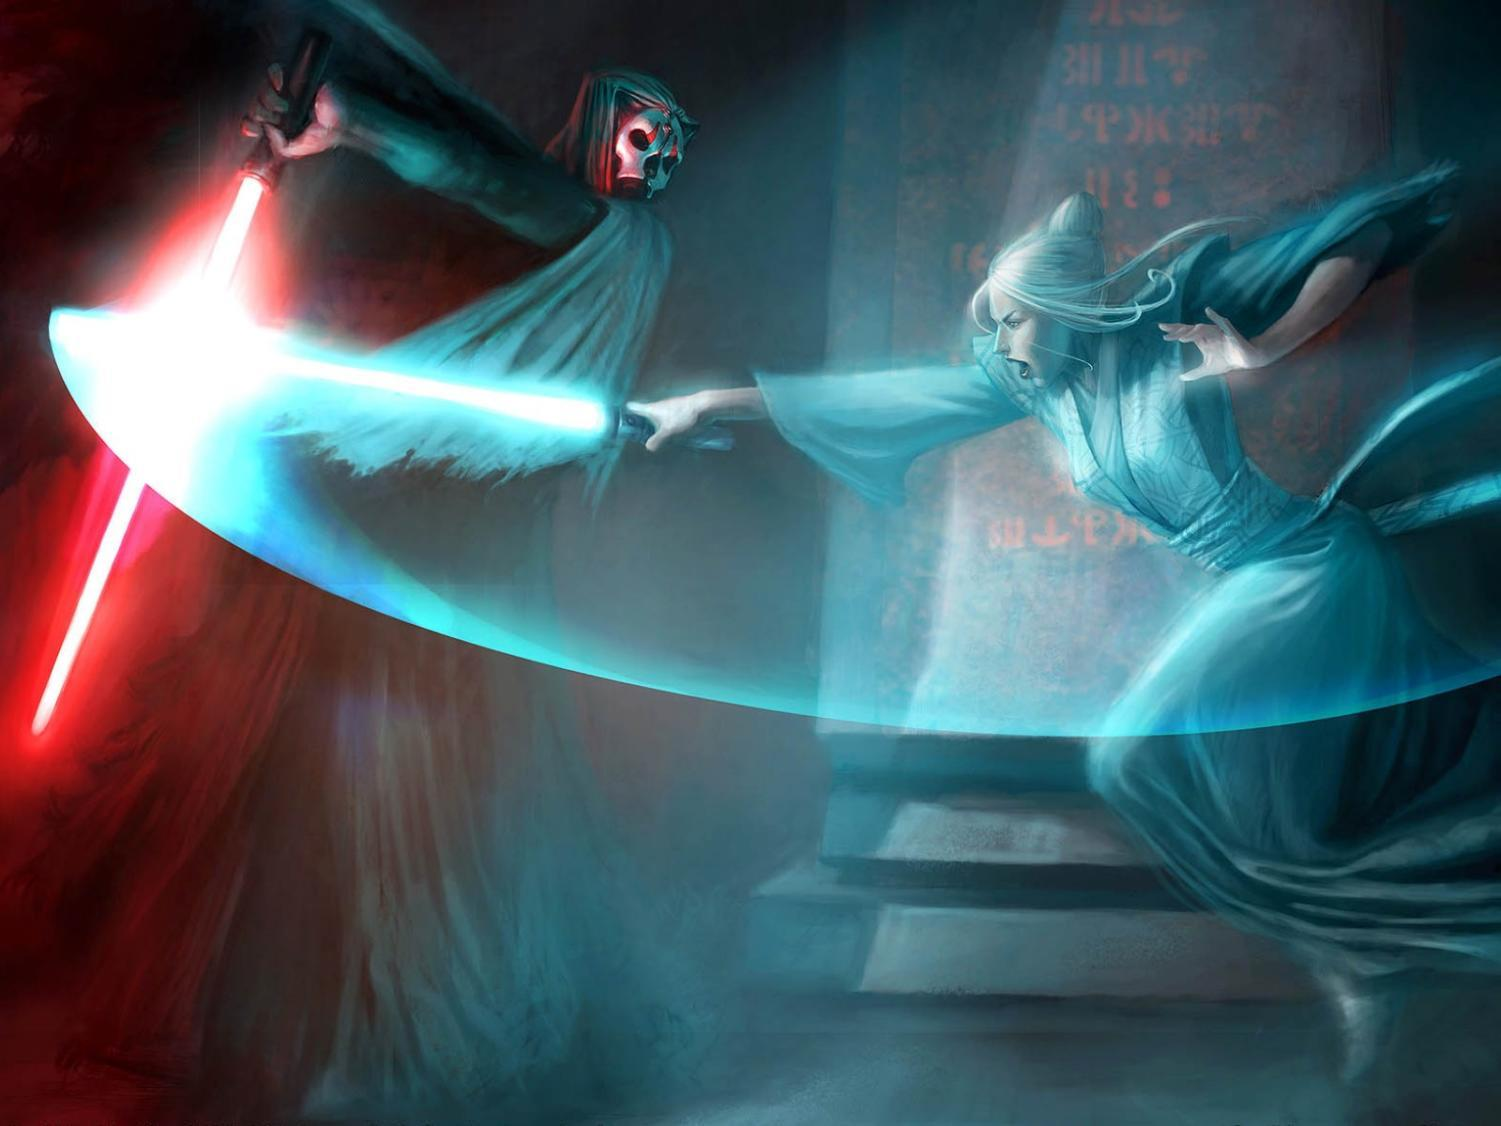 Darth Nihilus engages in a duel with Jedi Master Atris. Promotion image courtesy of LucasArts.com.